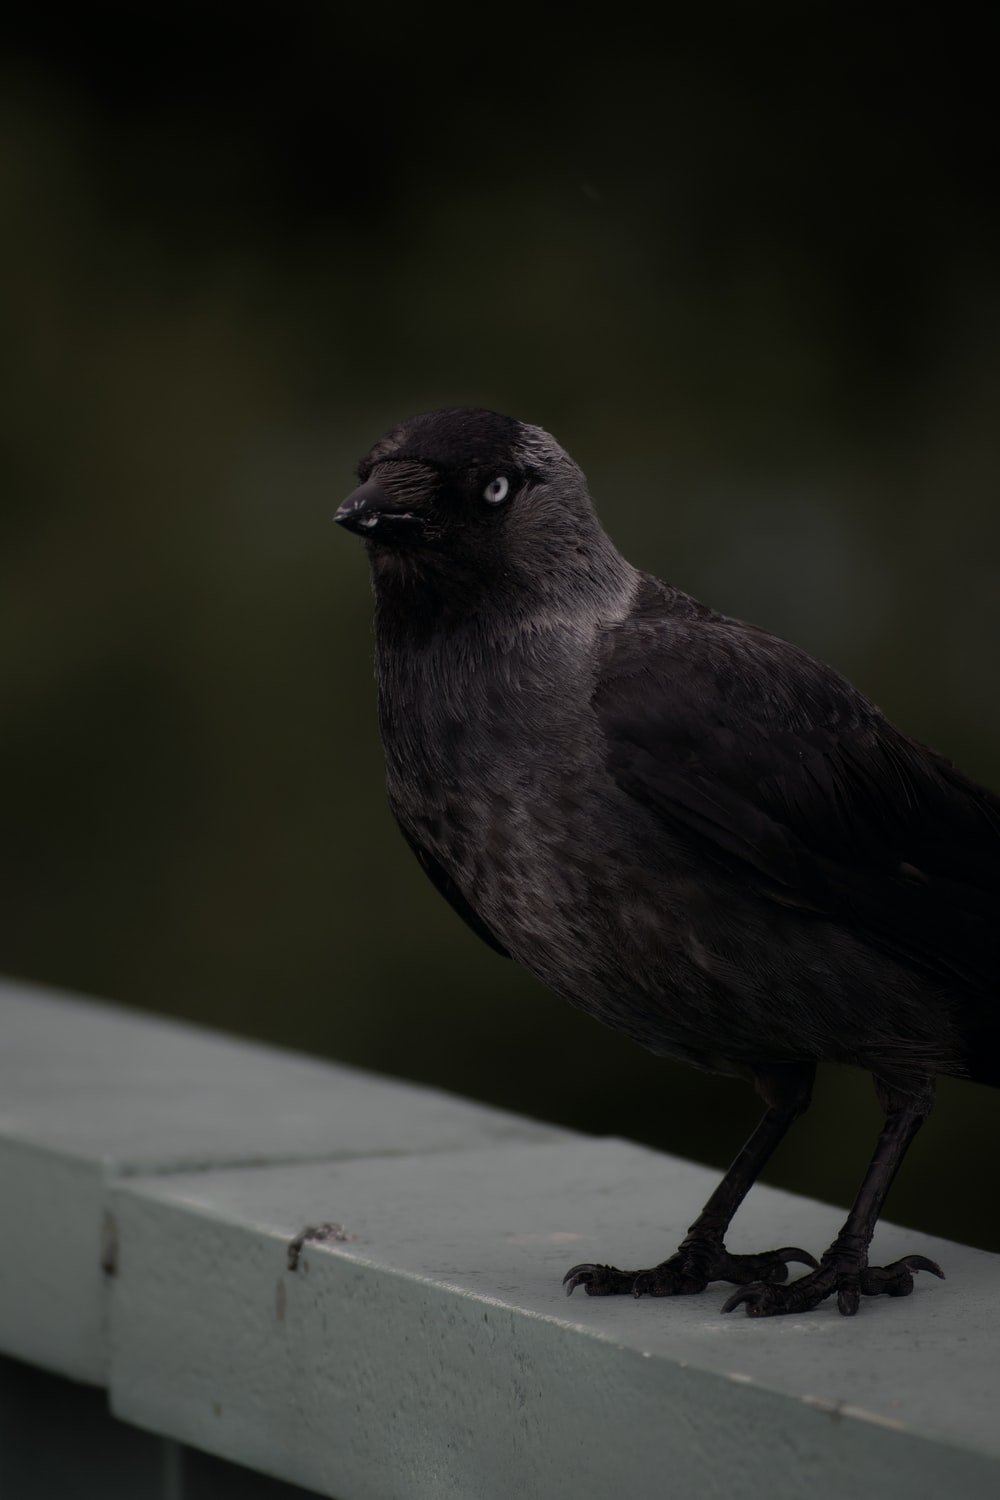 black and gray bird on white wooden table